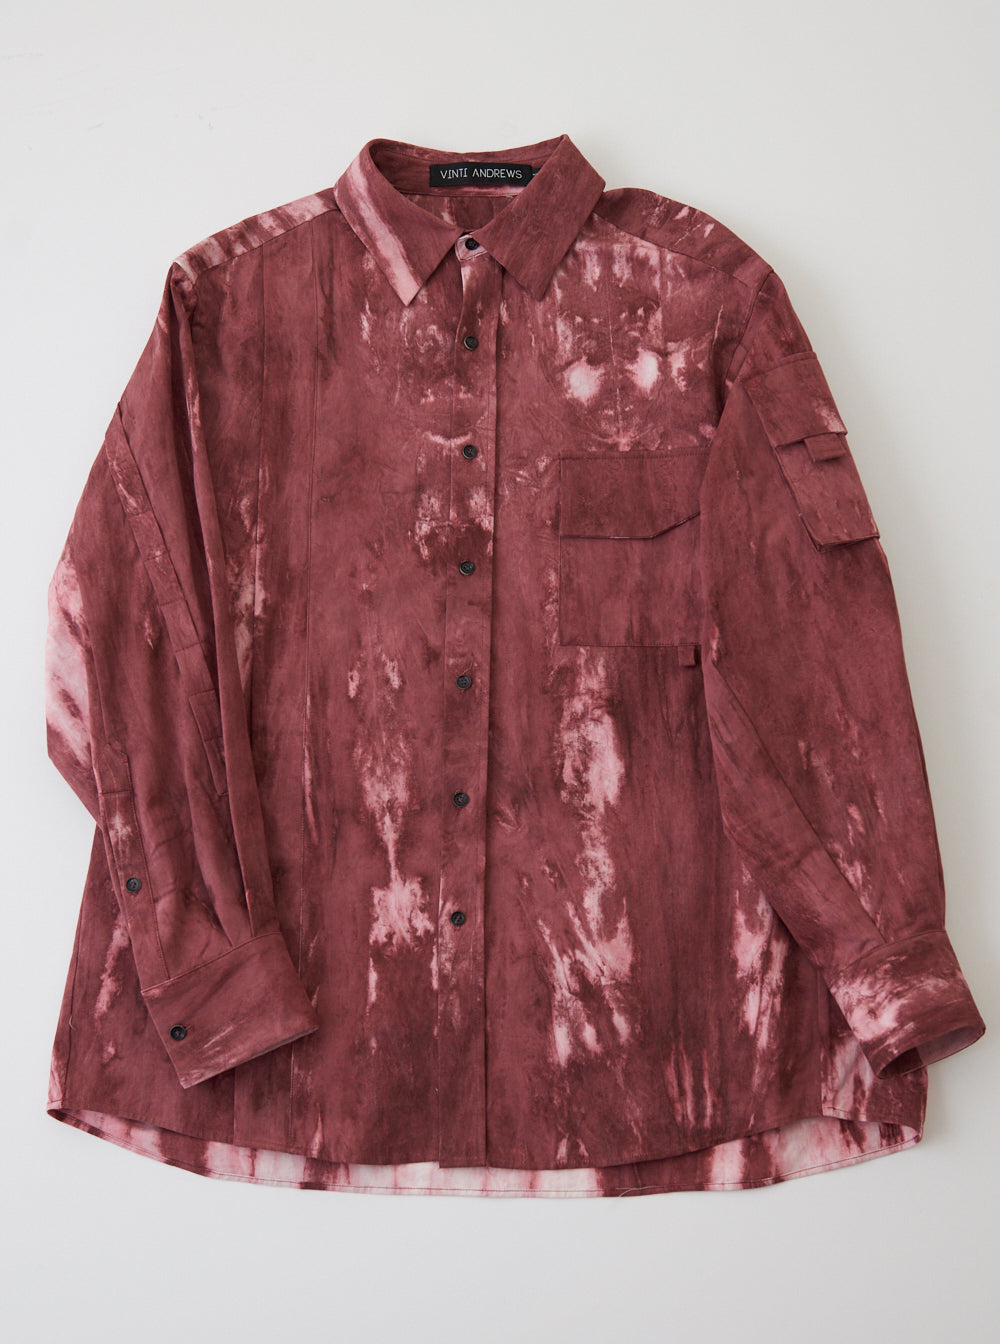 Vinti Andrews Arm Pocket Shirt Tie Dye